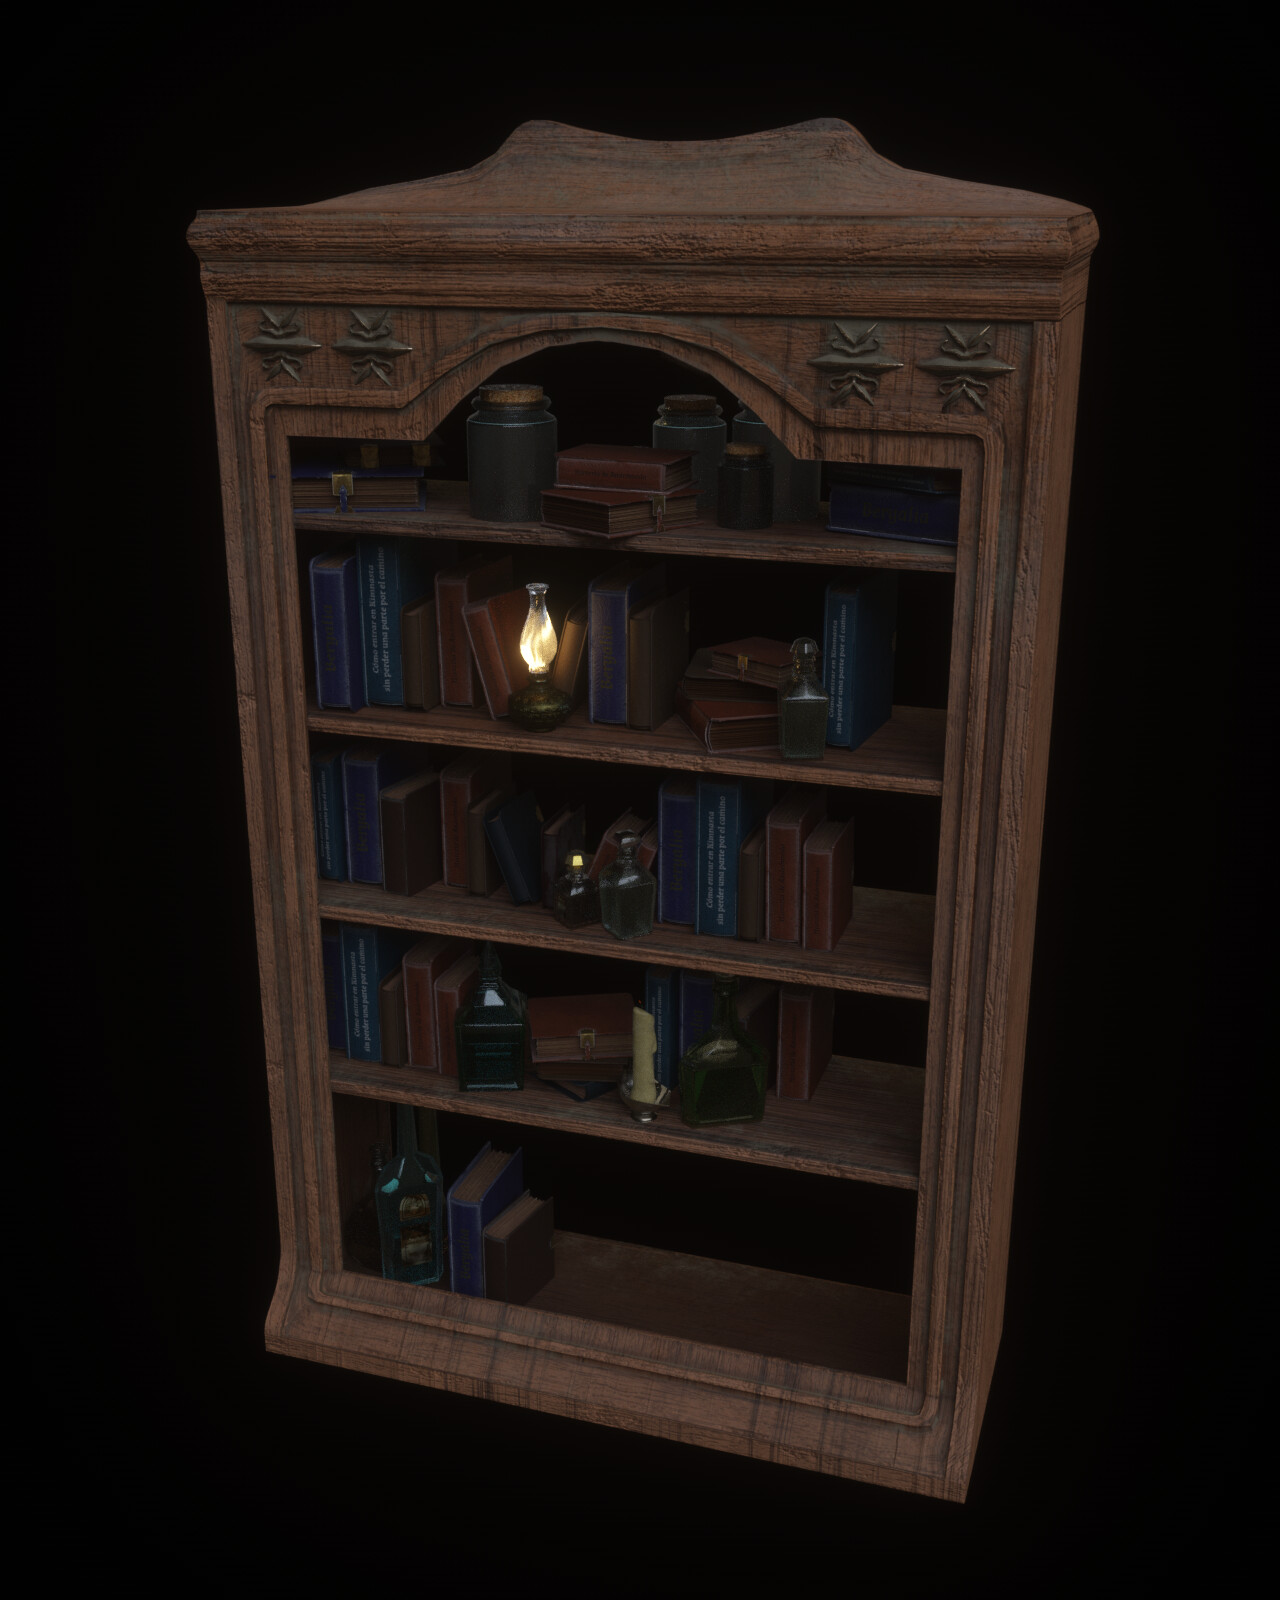 Another one of the assets, the library, filled with little objects. The lack of objects in the right part helped optimize the scene, and run smoothly in my computer.